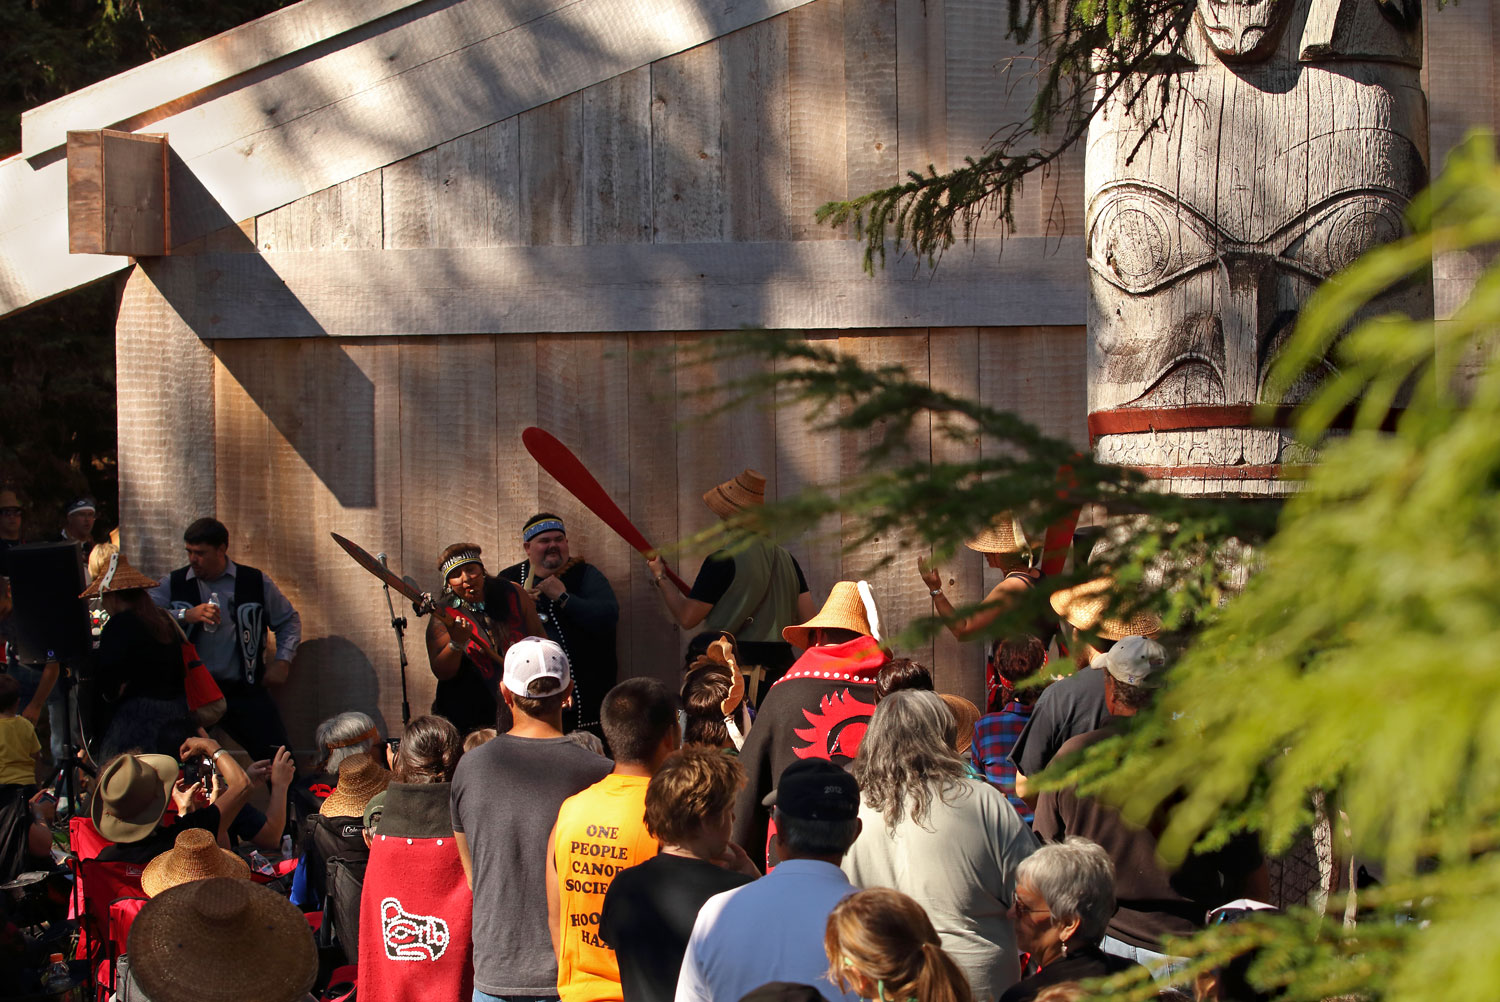 The Haida dancers sang and drummed as they danced their way around the longhouse.